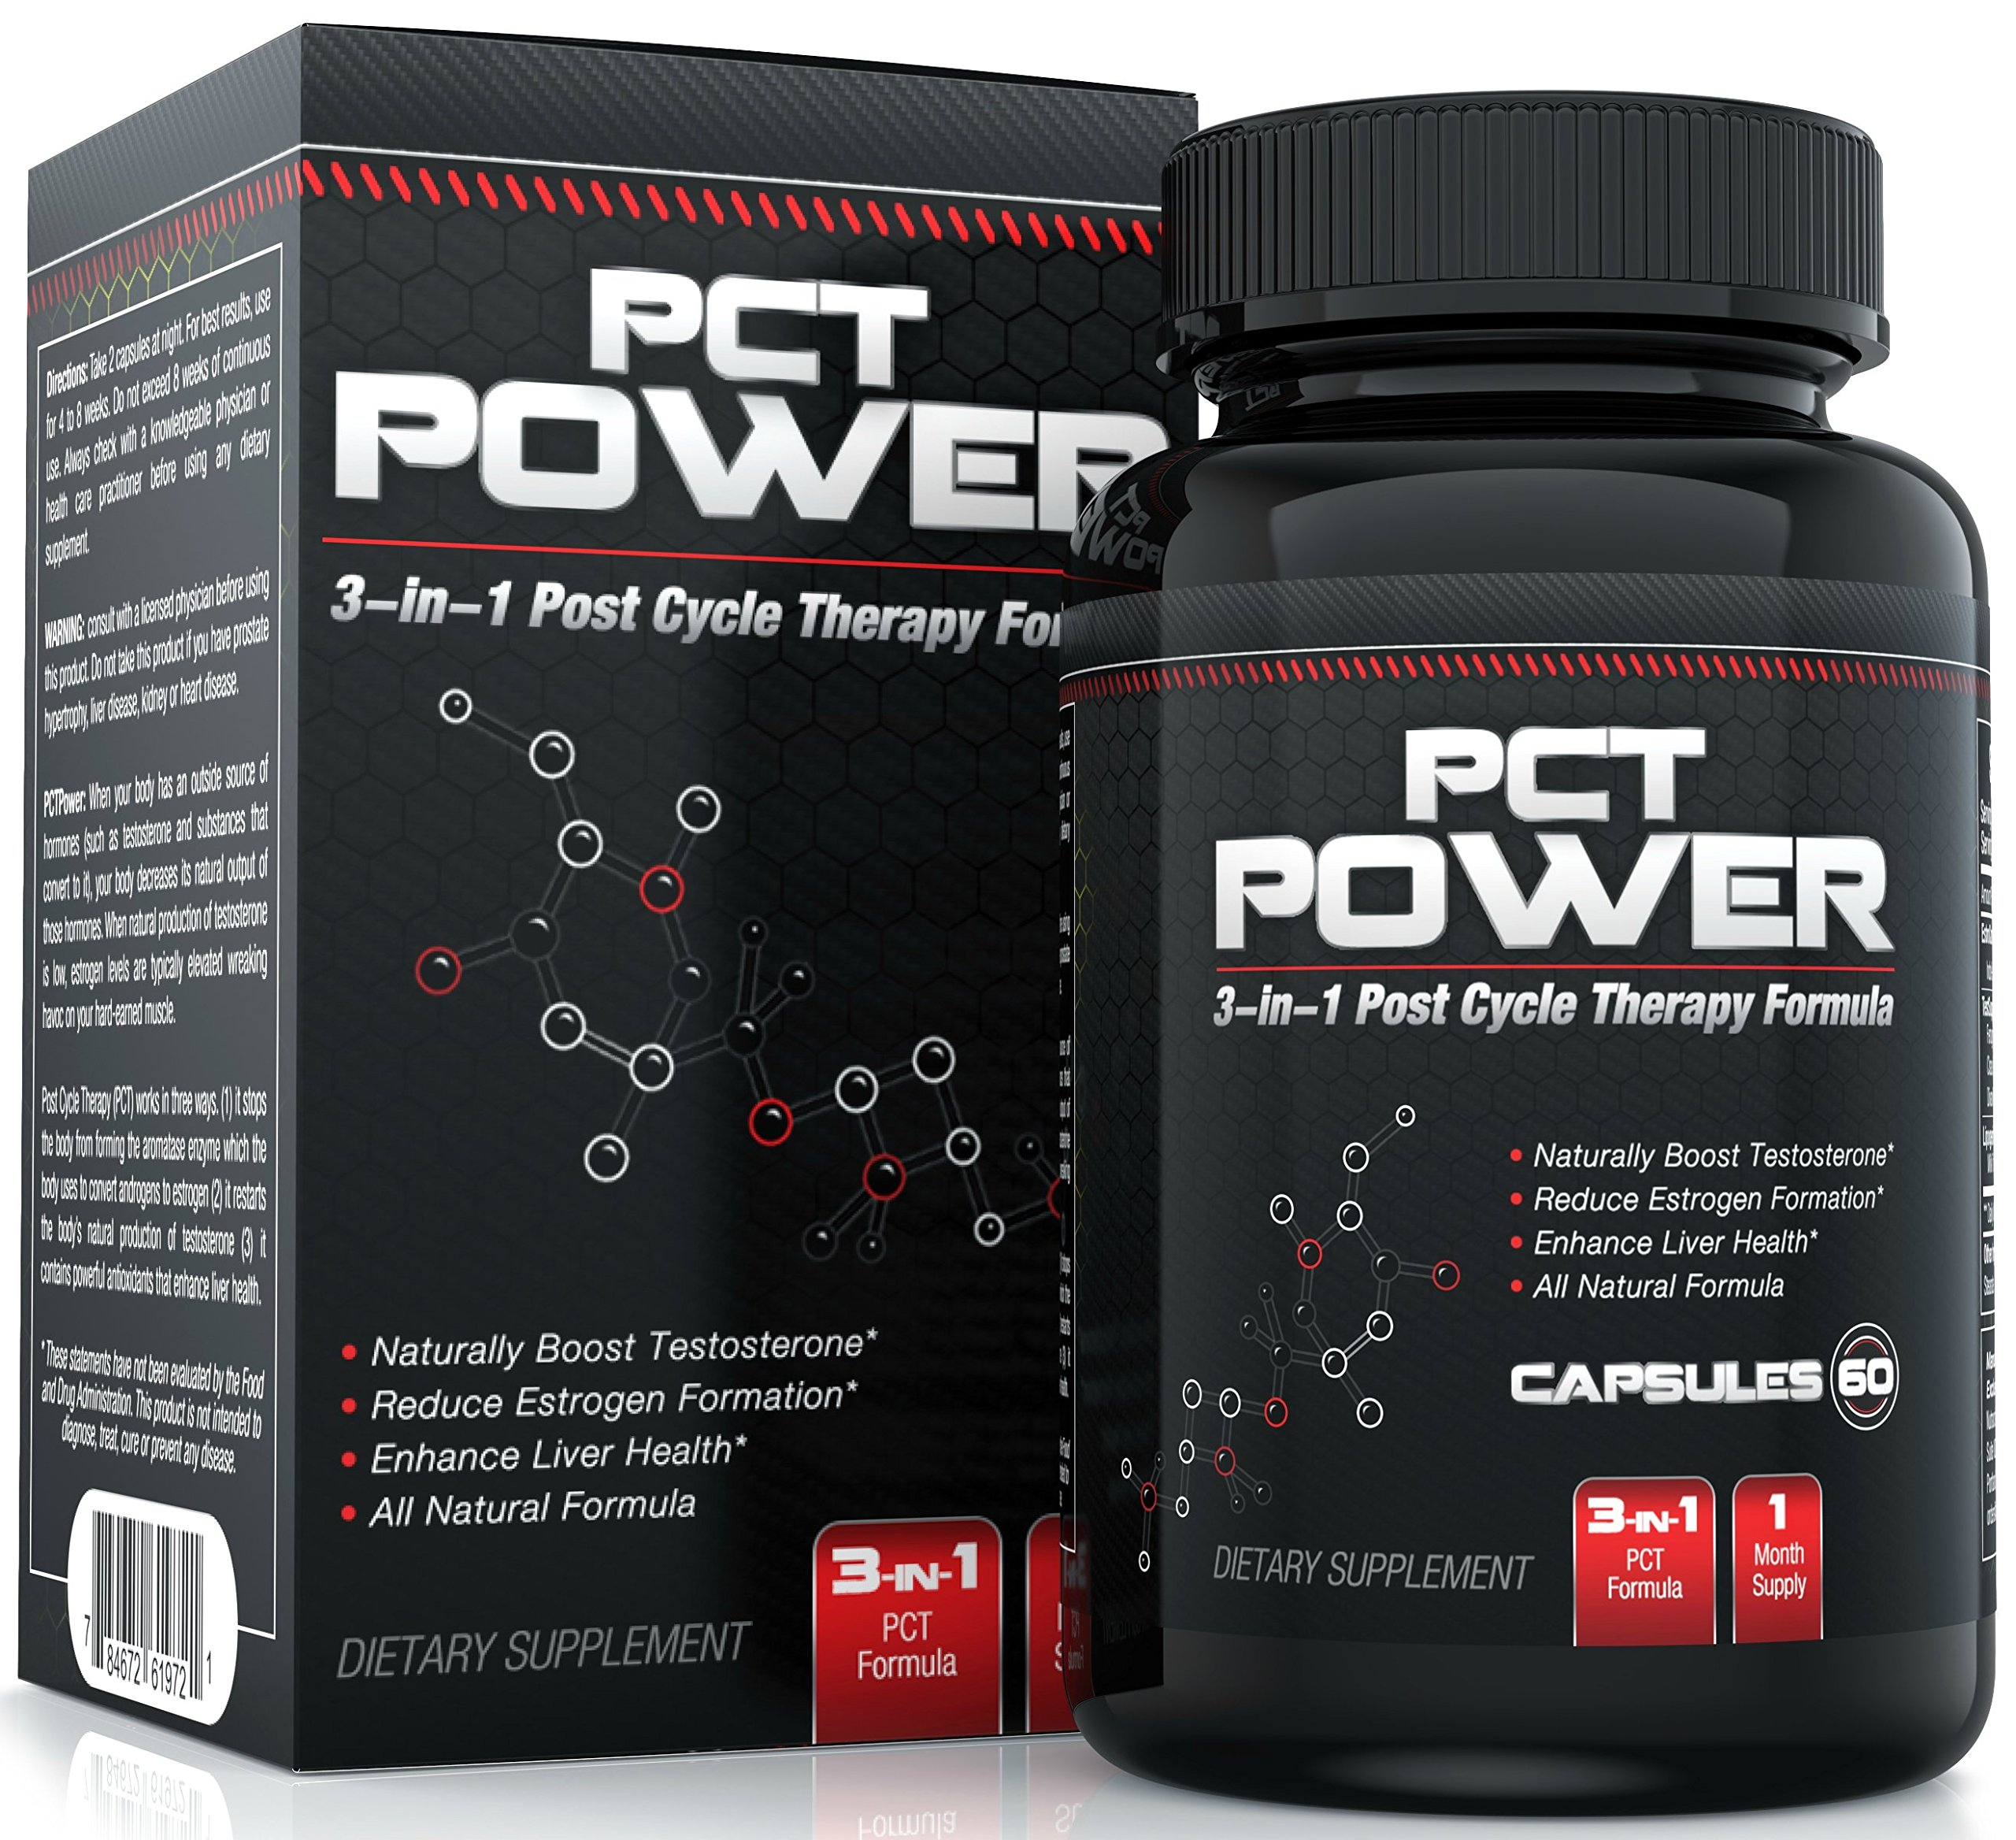 #1 Post Cycle Therapy Supplement - 3-in-1 PCT Supplement with Estrogen Blocker, Testosterone Booster and Liver Support - Contains Fenugreek, Chrysin, Milk Thistle, Tongkat Ali and More - 60 Caps